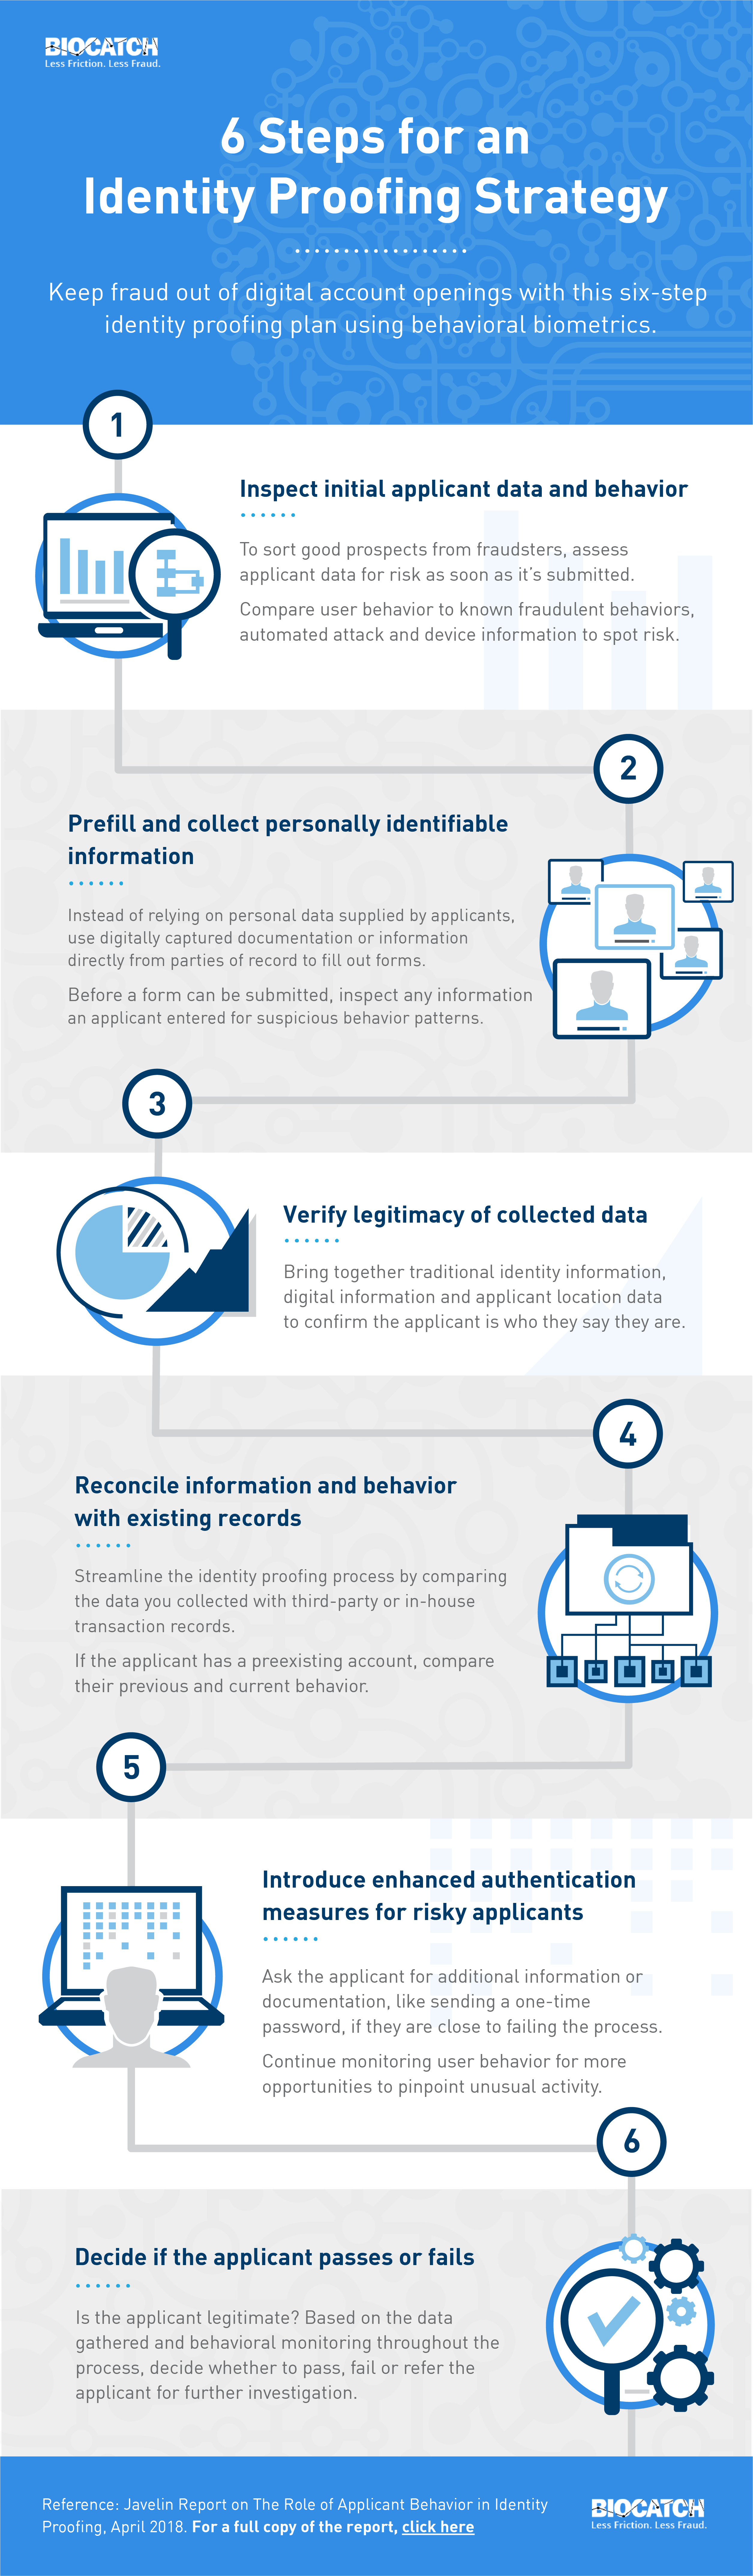 How to Verify Identity Online: 6 Steps for an Identity Proofing Strategy